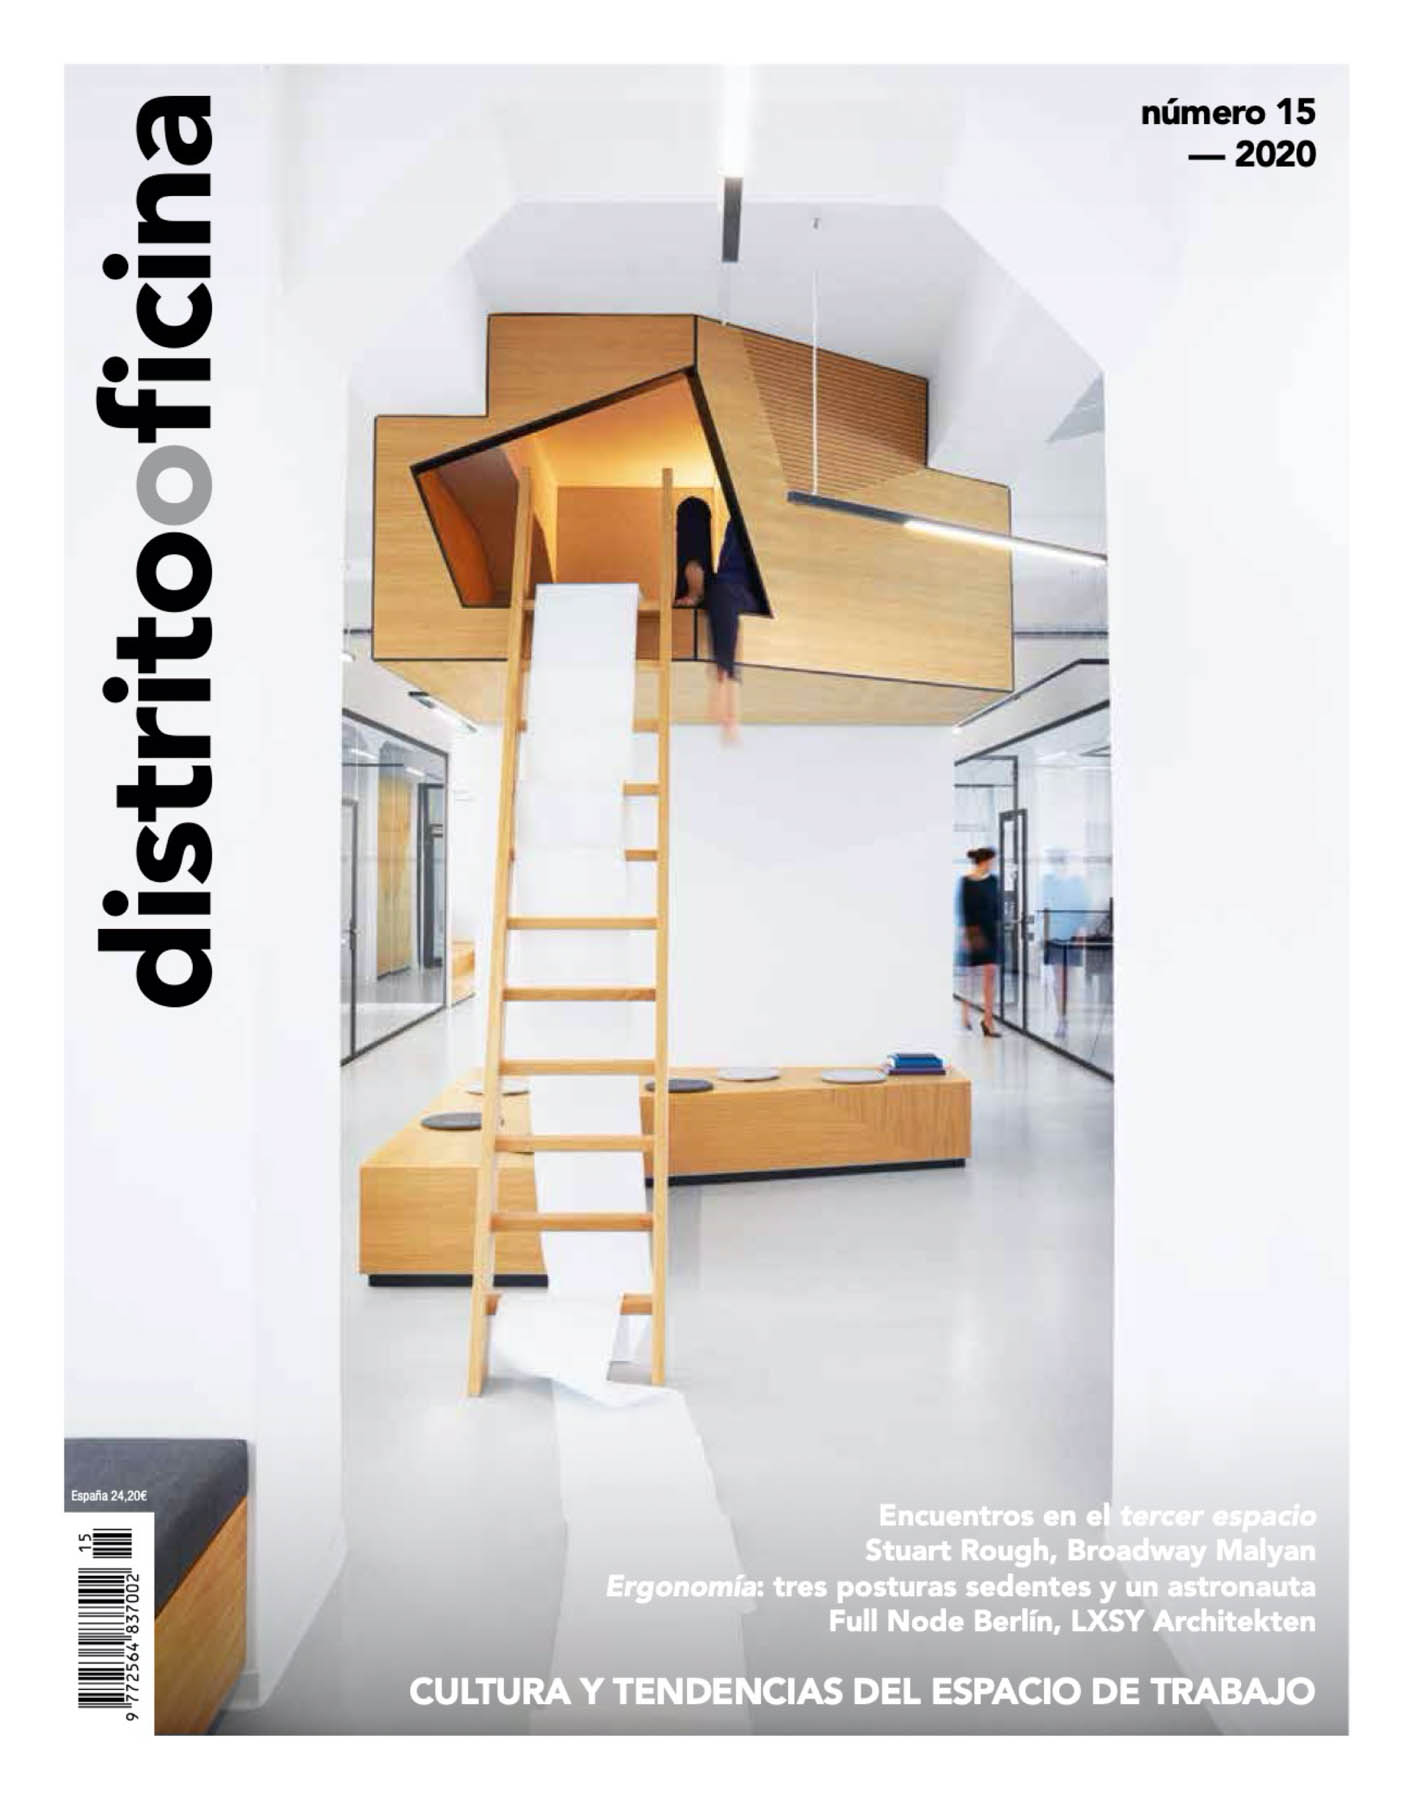 Spectris no Porto do Atelier Studium foi publicado na revista D